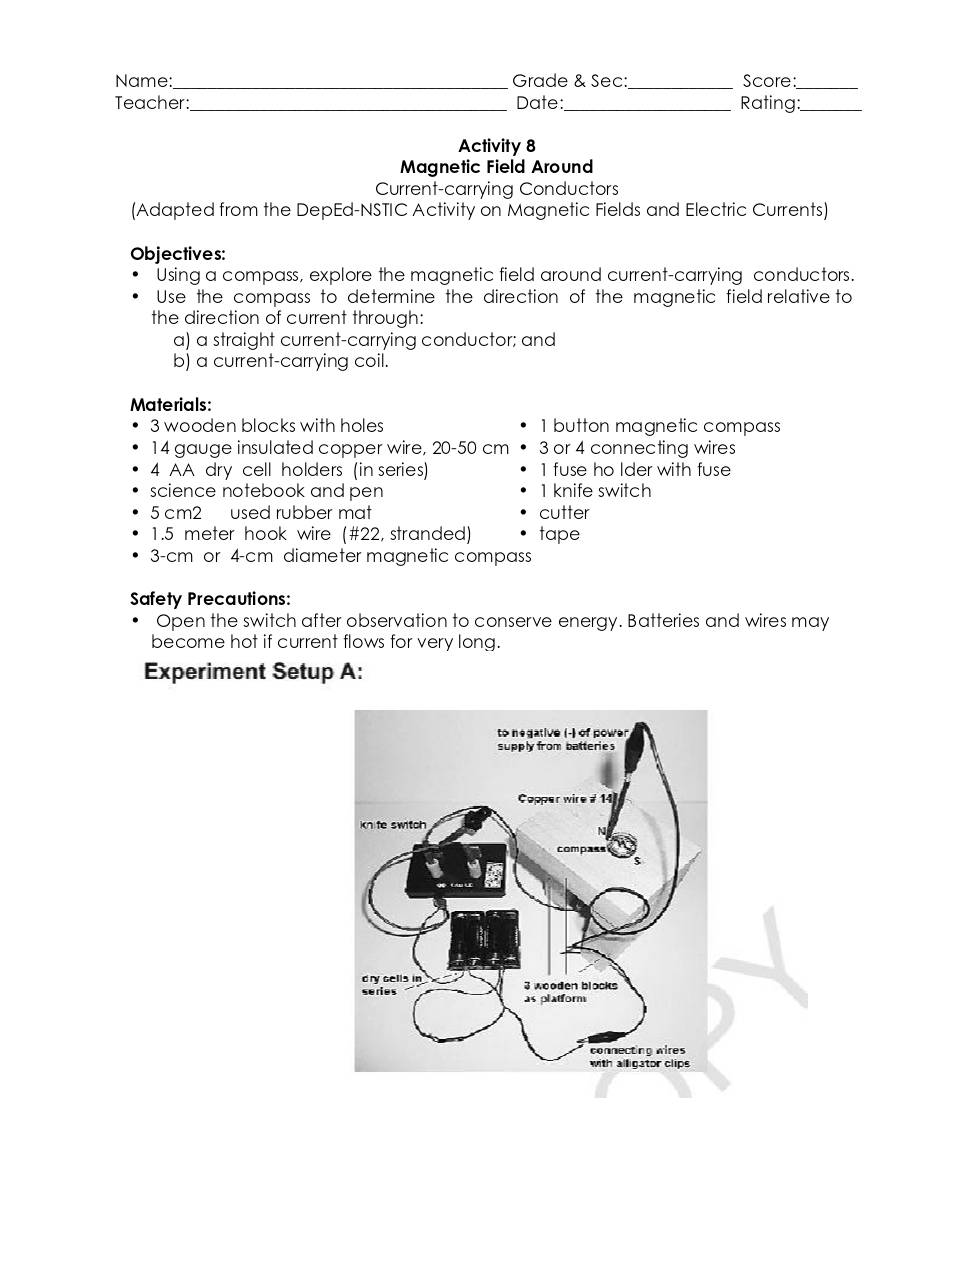 Awesome 14 Gauge Wire Uses Sketch - Electrical Diagram Ideas ...